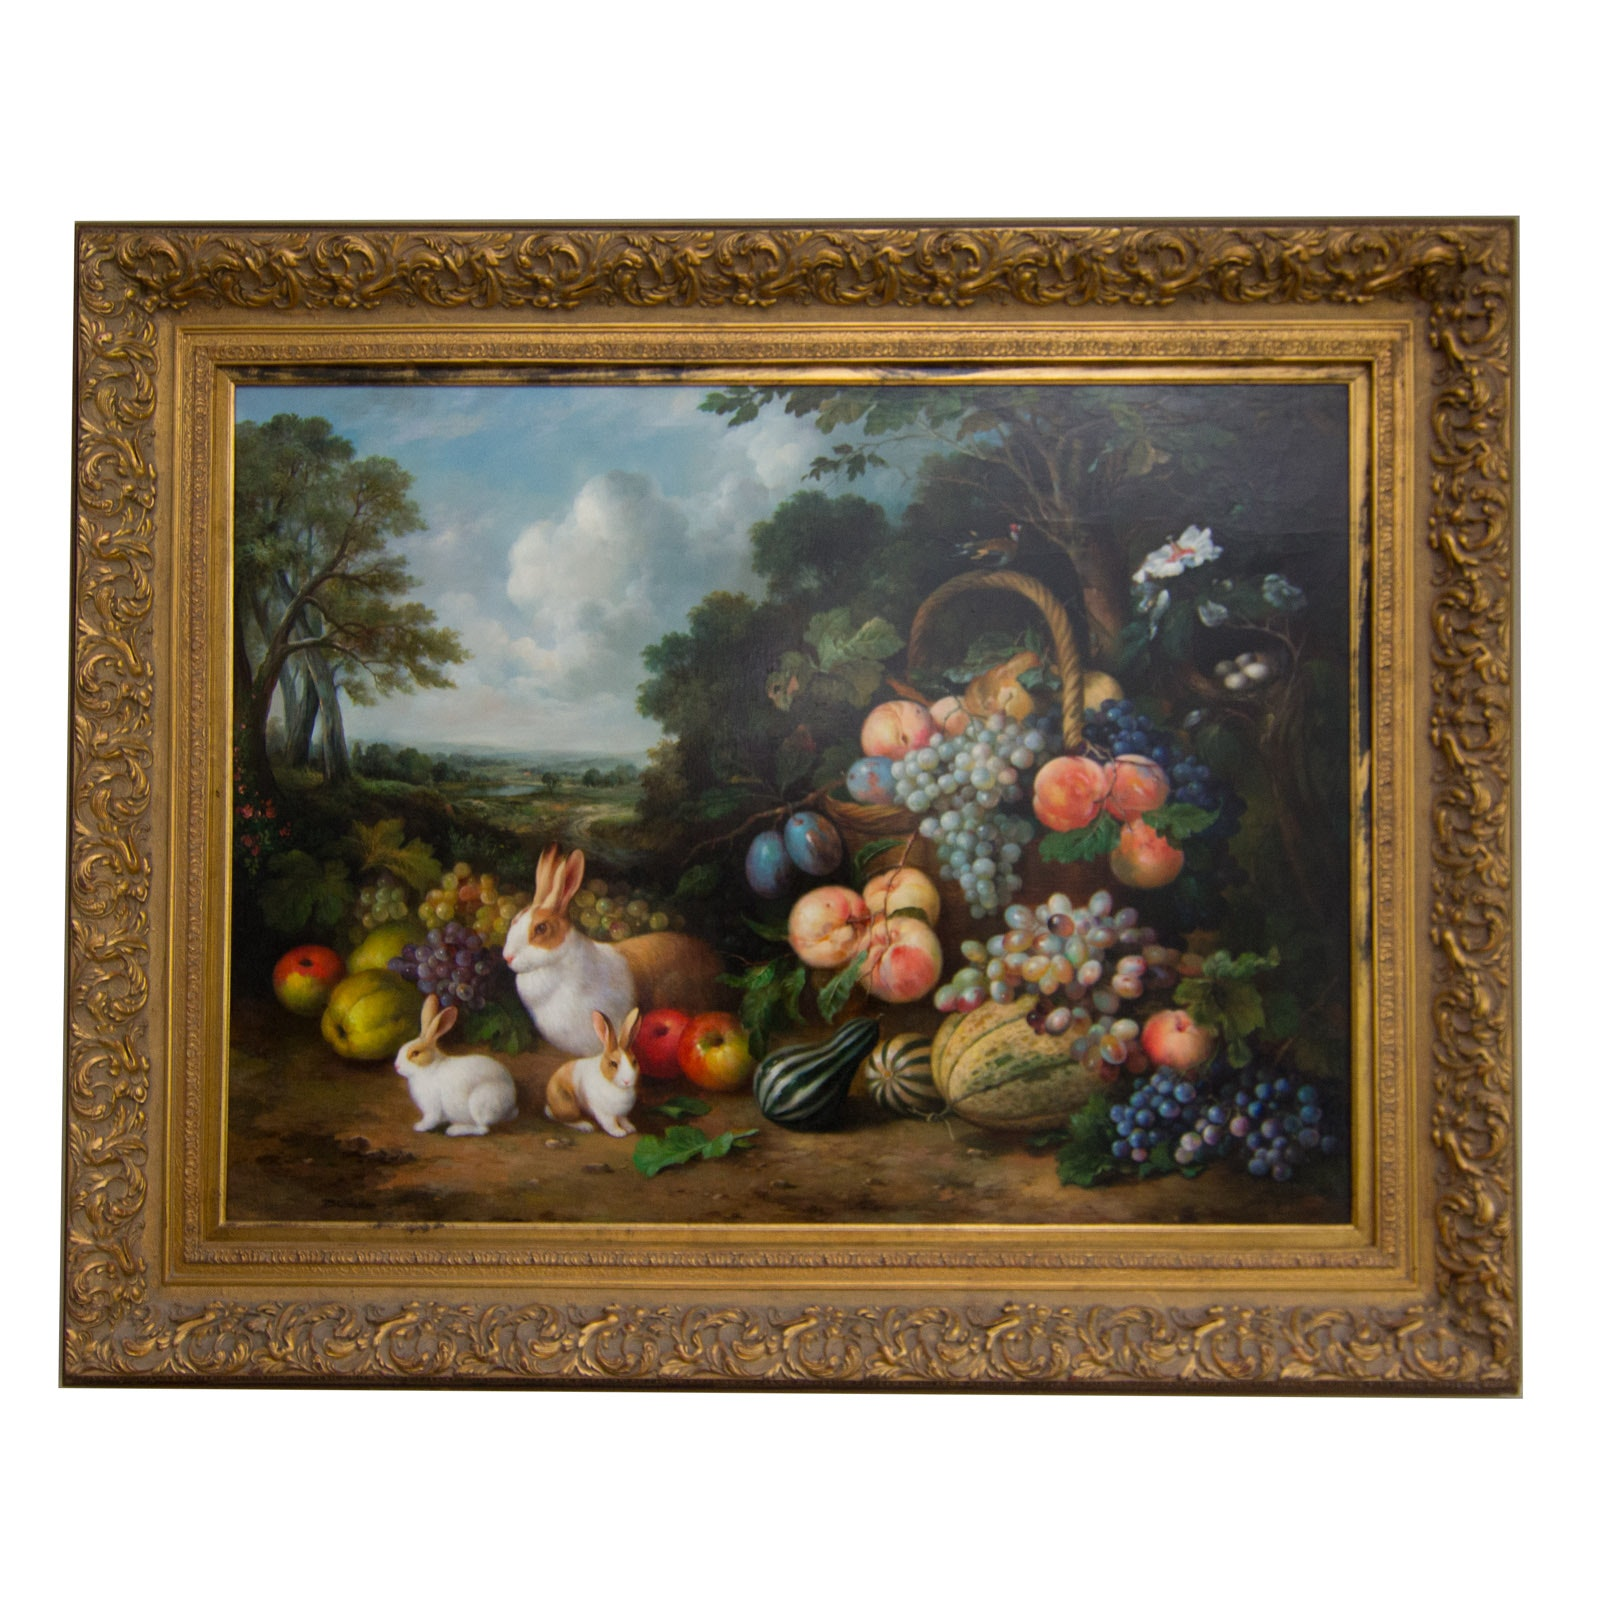 Gerhard Bluhm Animal and Fruit Still Life Oil Painting on Canvas